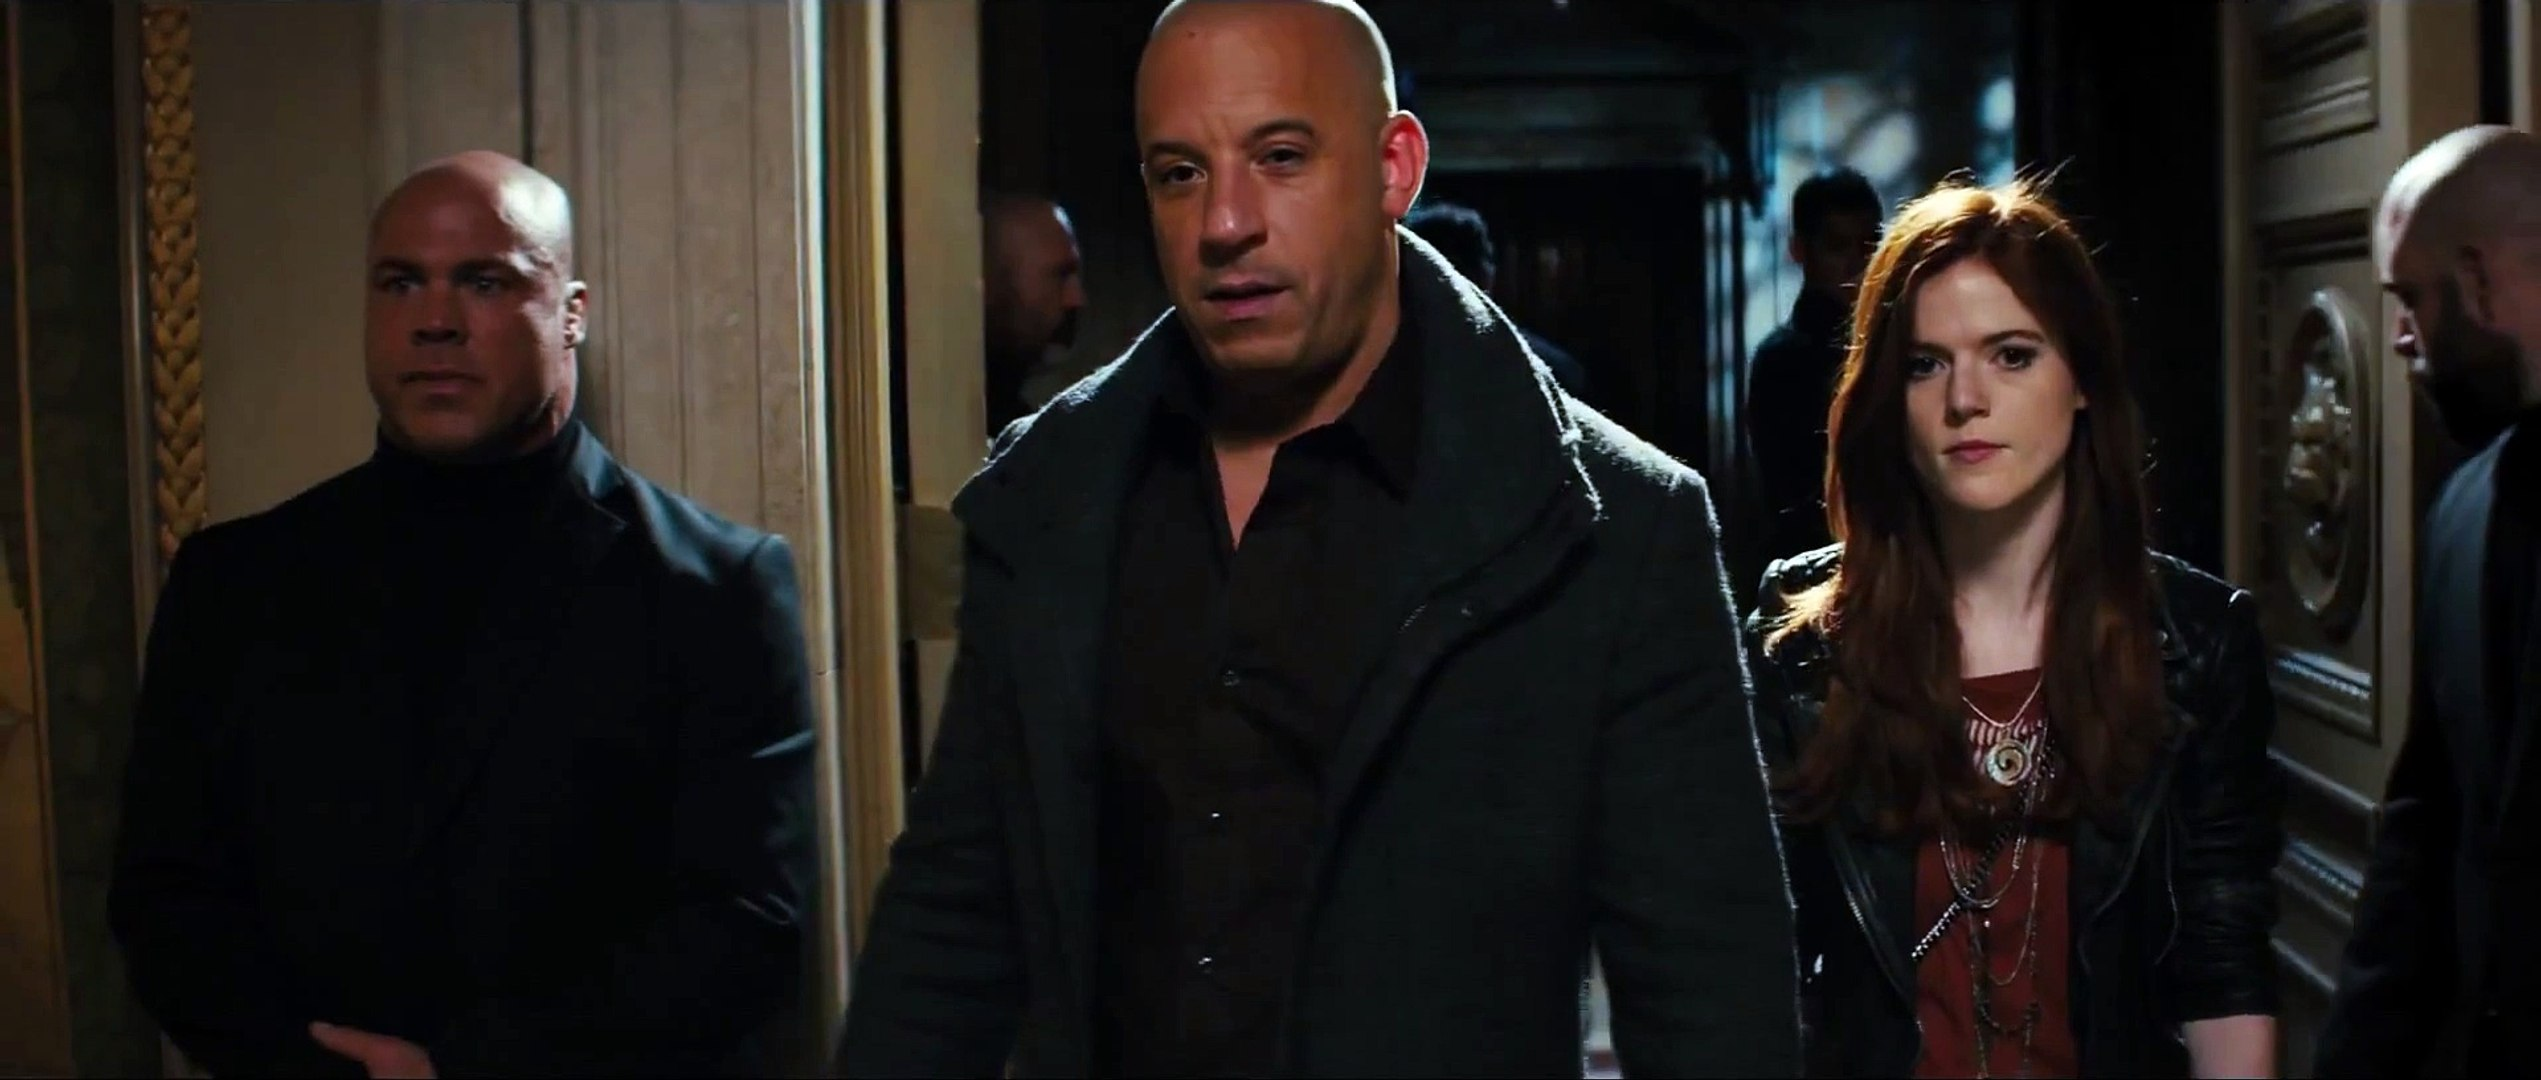 The Last Witch Hunter Official Teaser Trailer #1 (2015) - Vin Diesel, Michael Caine Movie HD